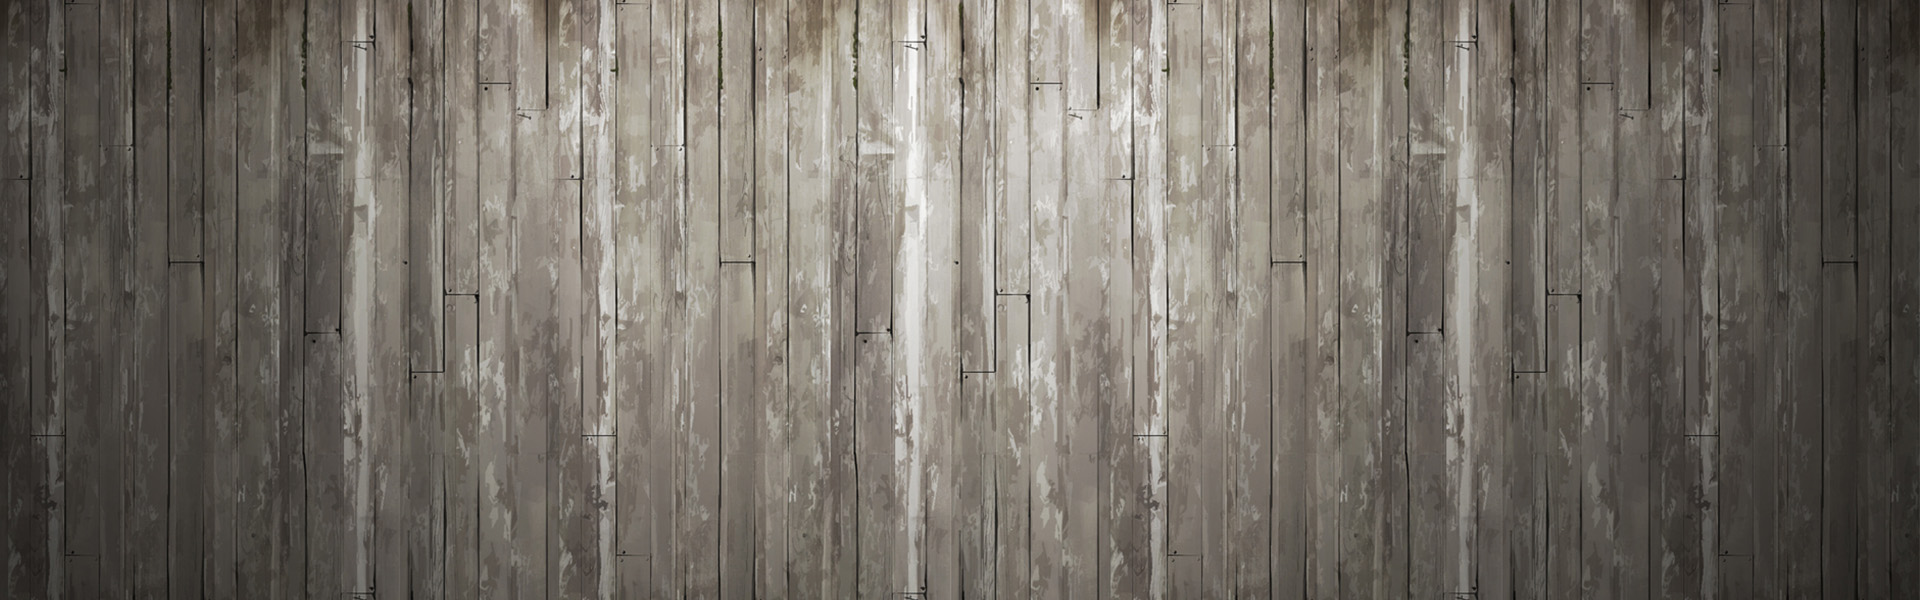 wood-texture_00273966